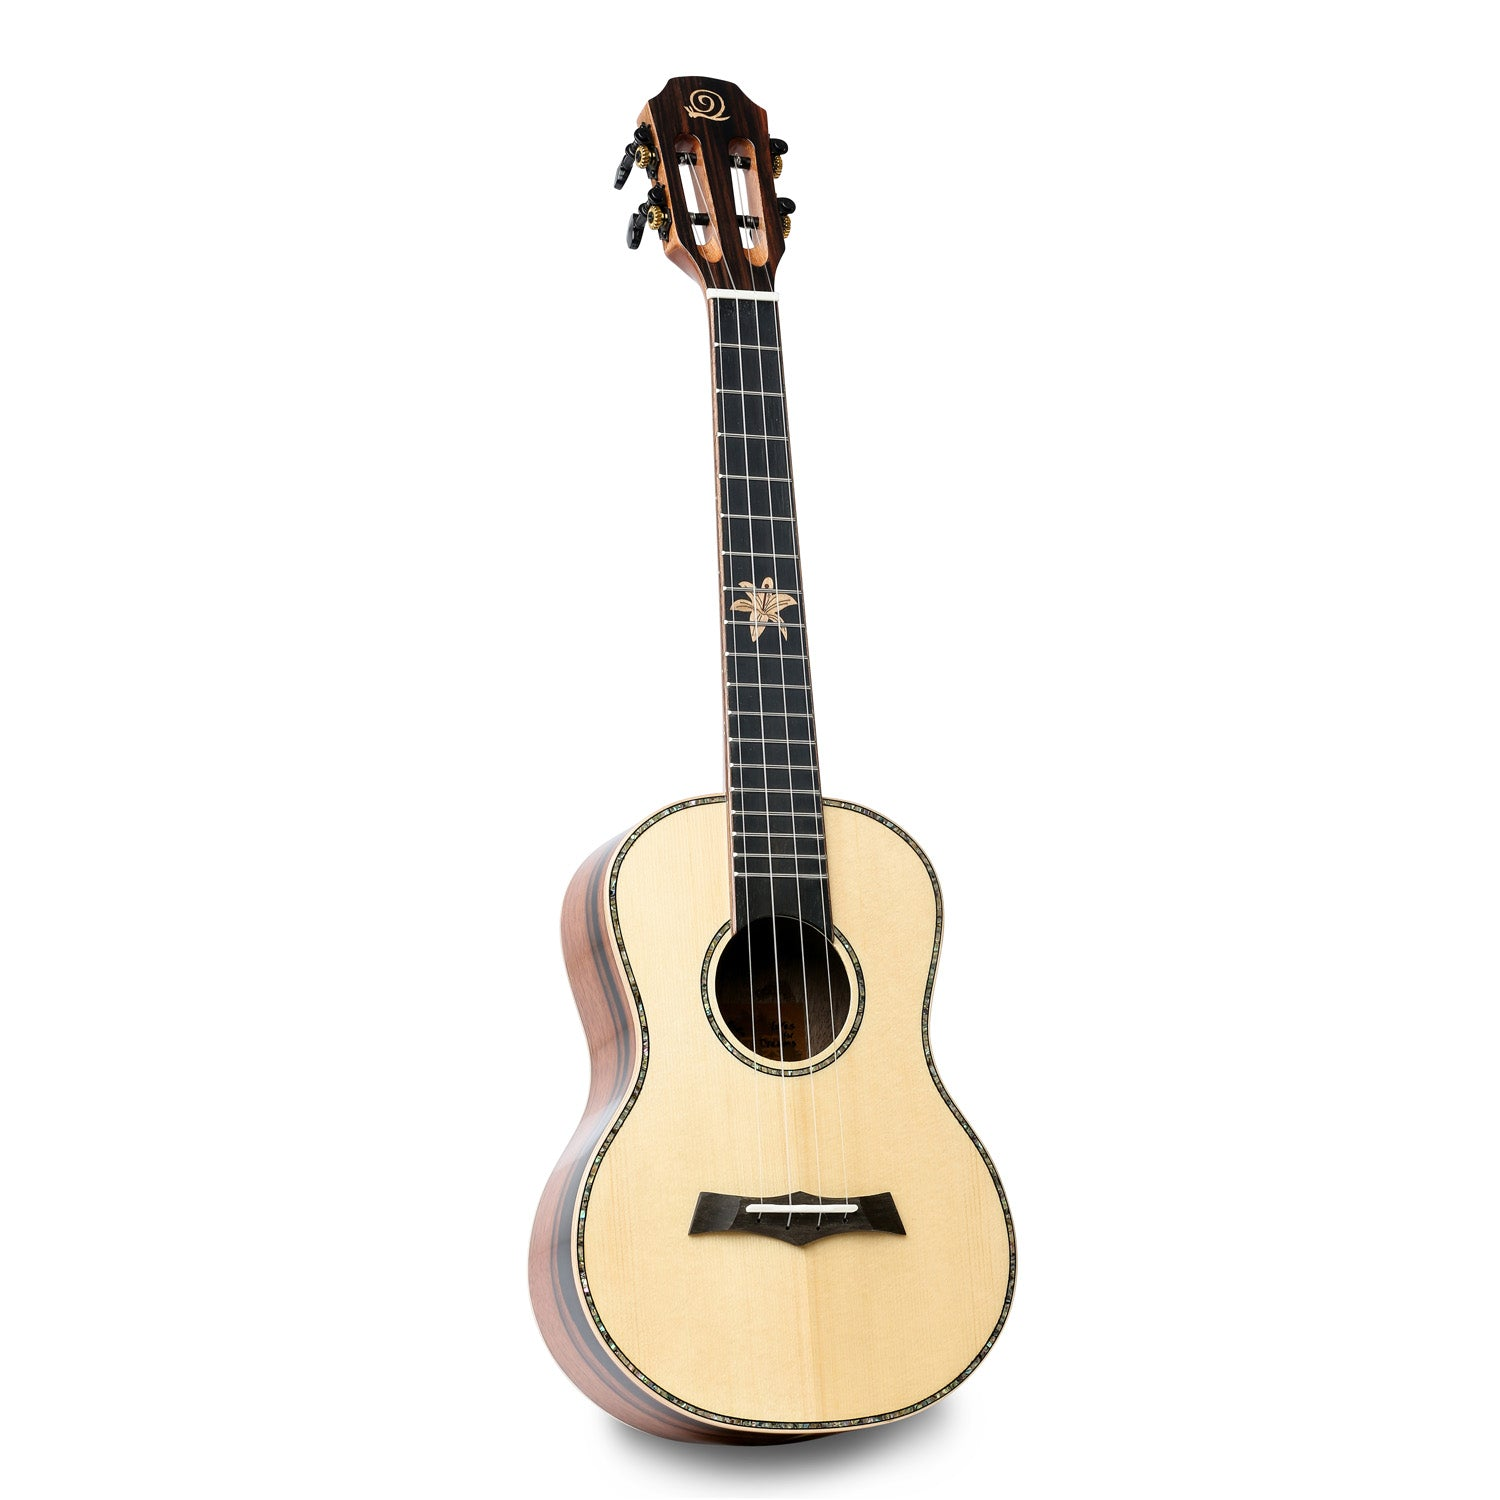 Snail BHC-5T Solid Spruce Top Tenor Ukulele - Freebirdmusic